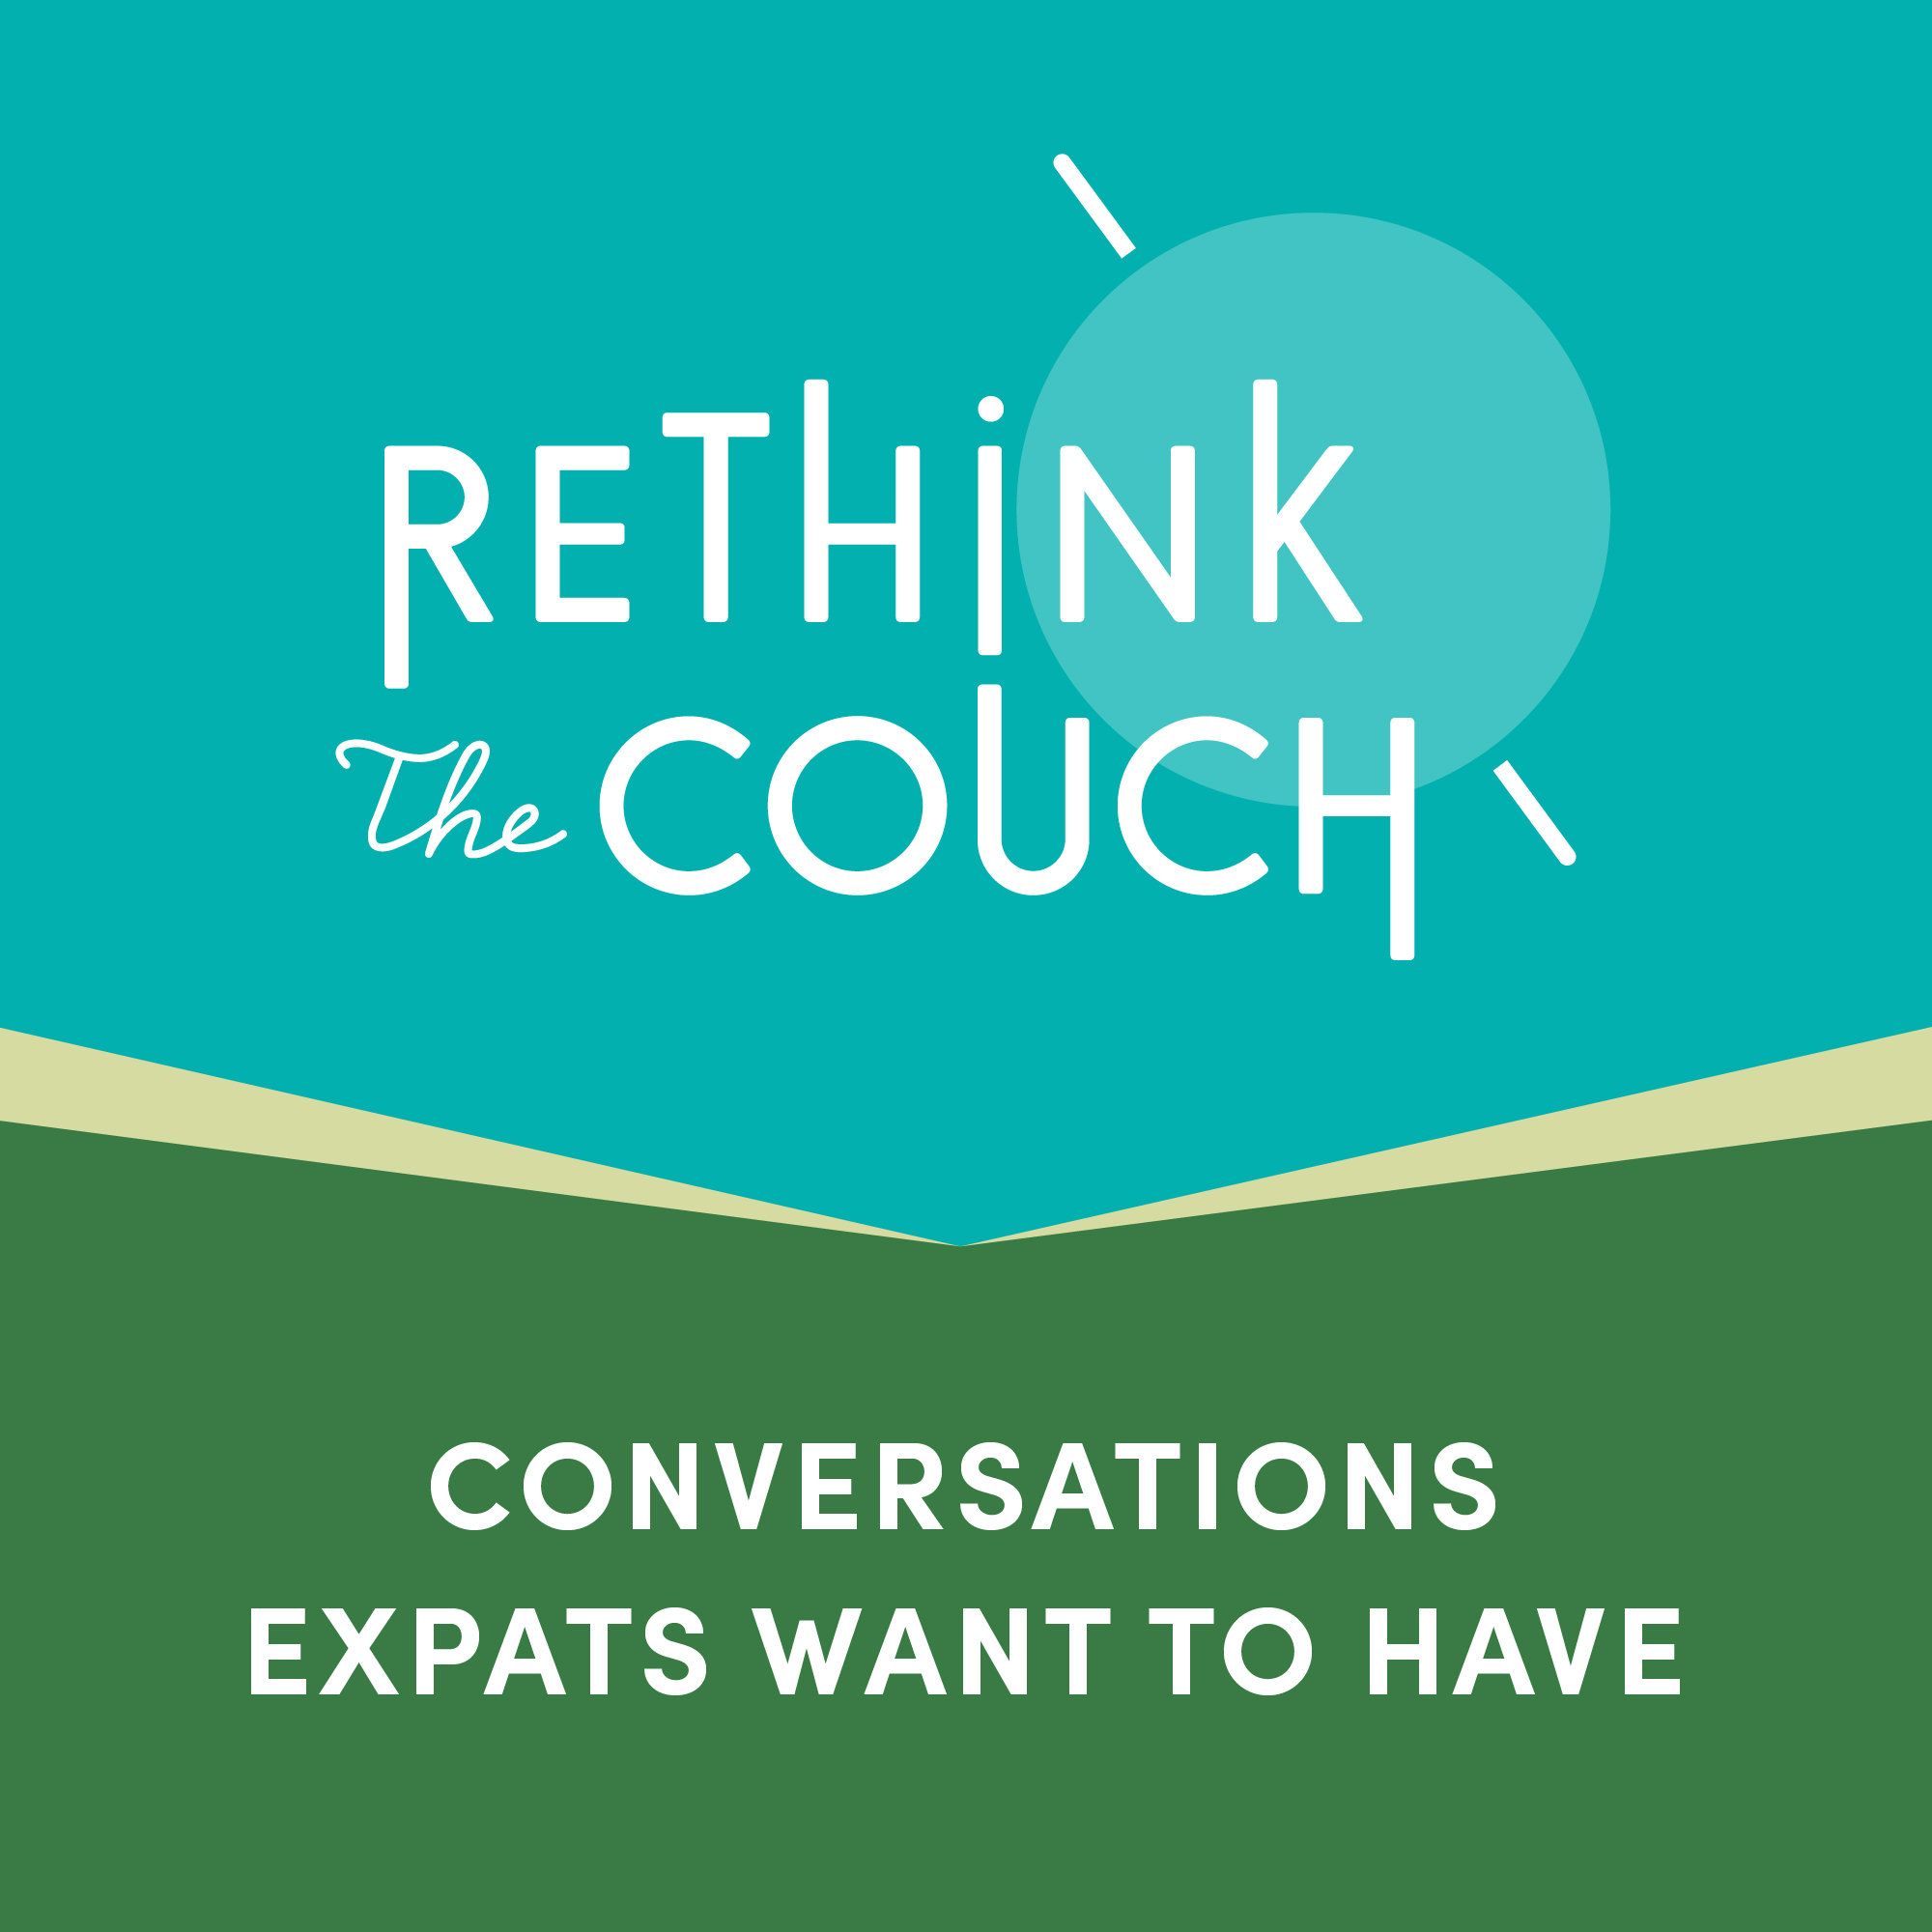 Rethink-The-Couch-Podcast-Artwork2.jpg